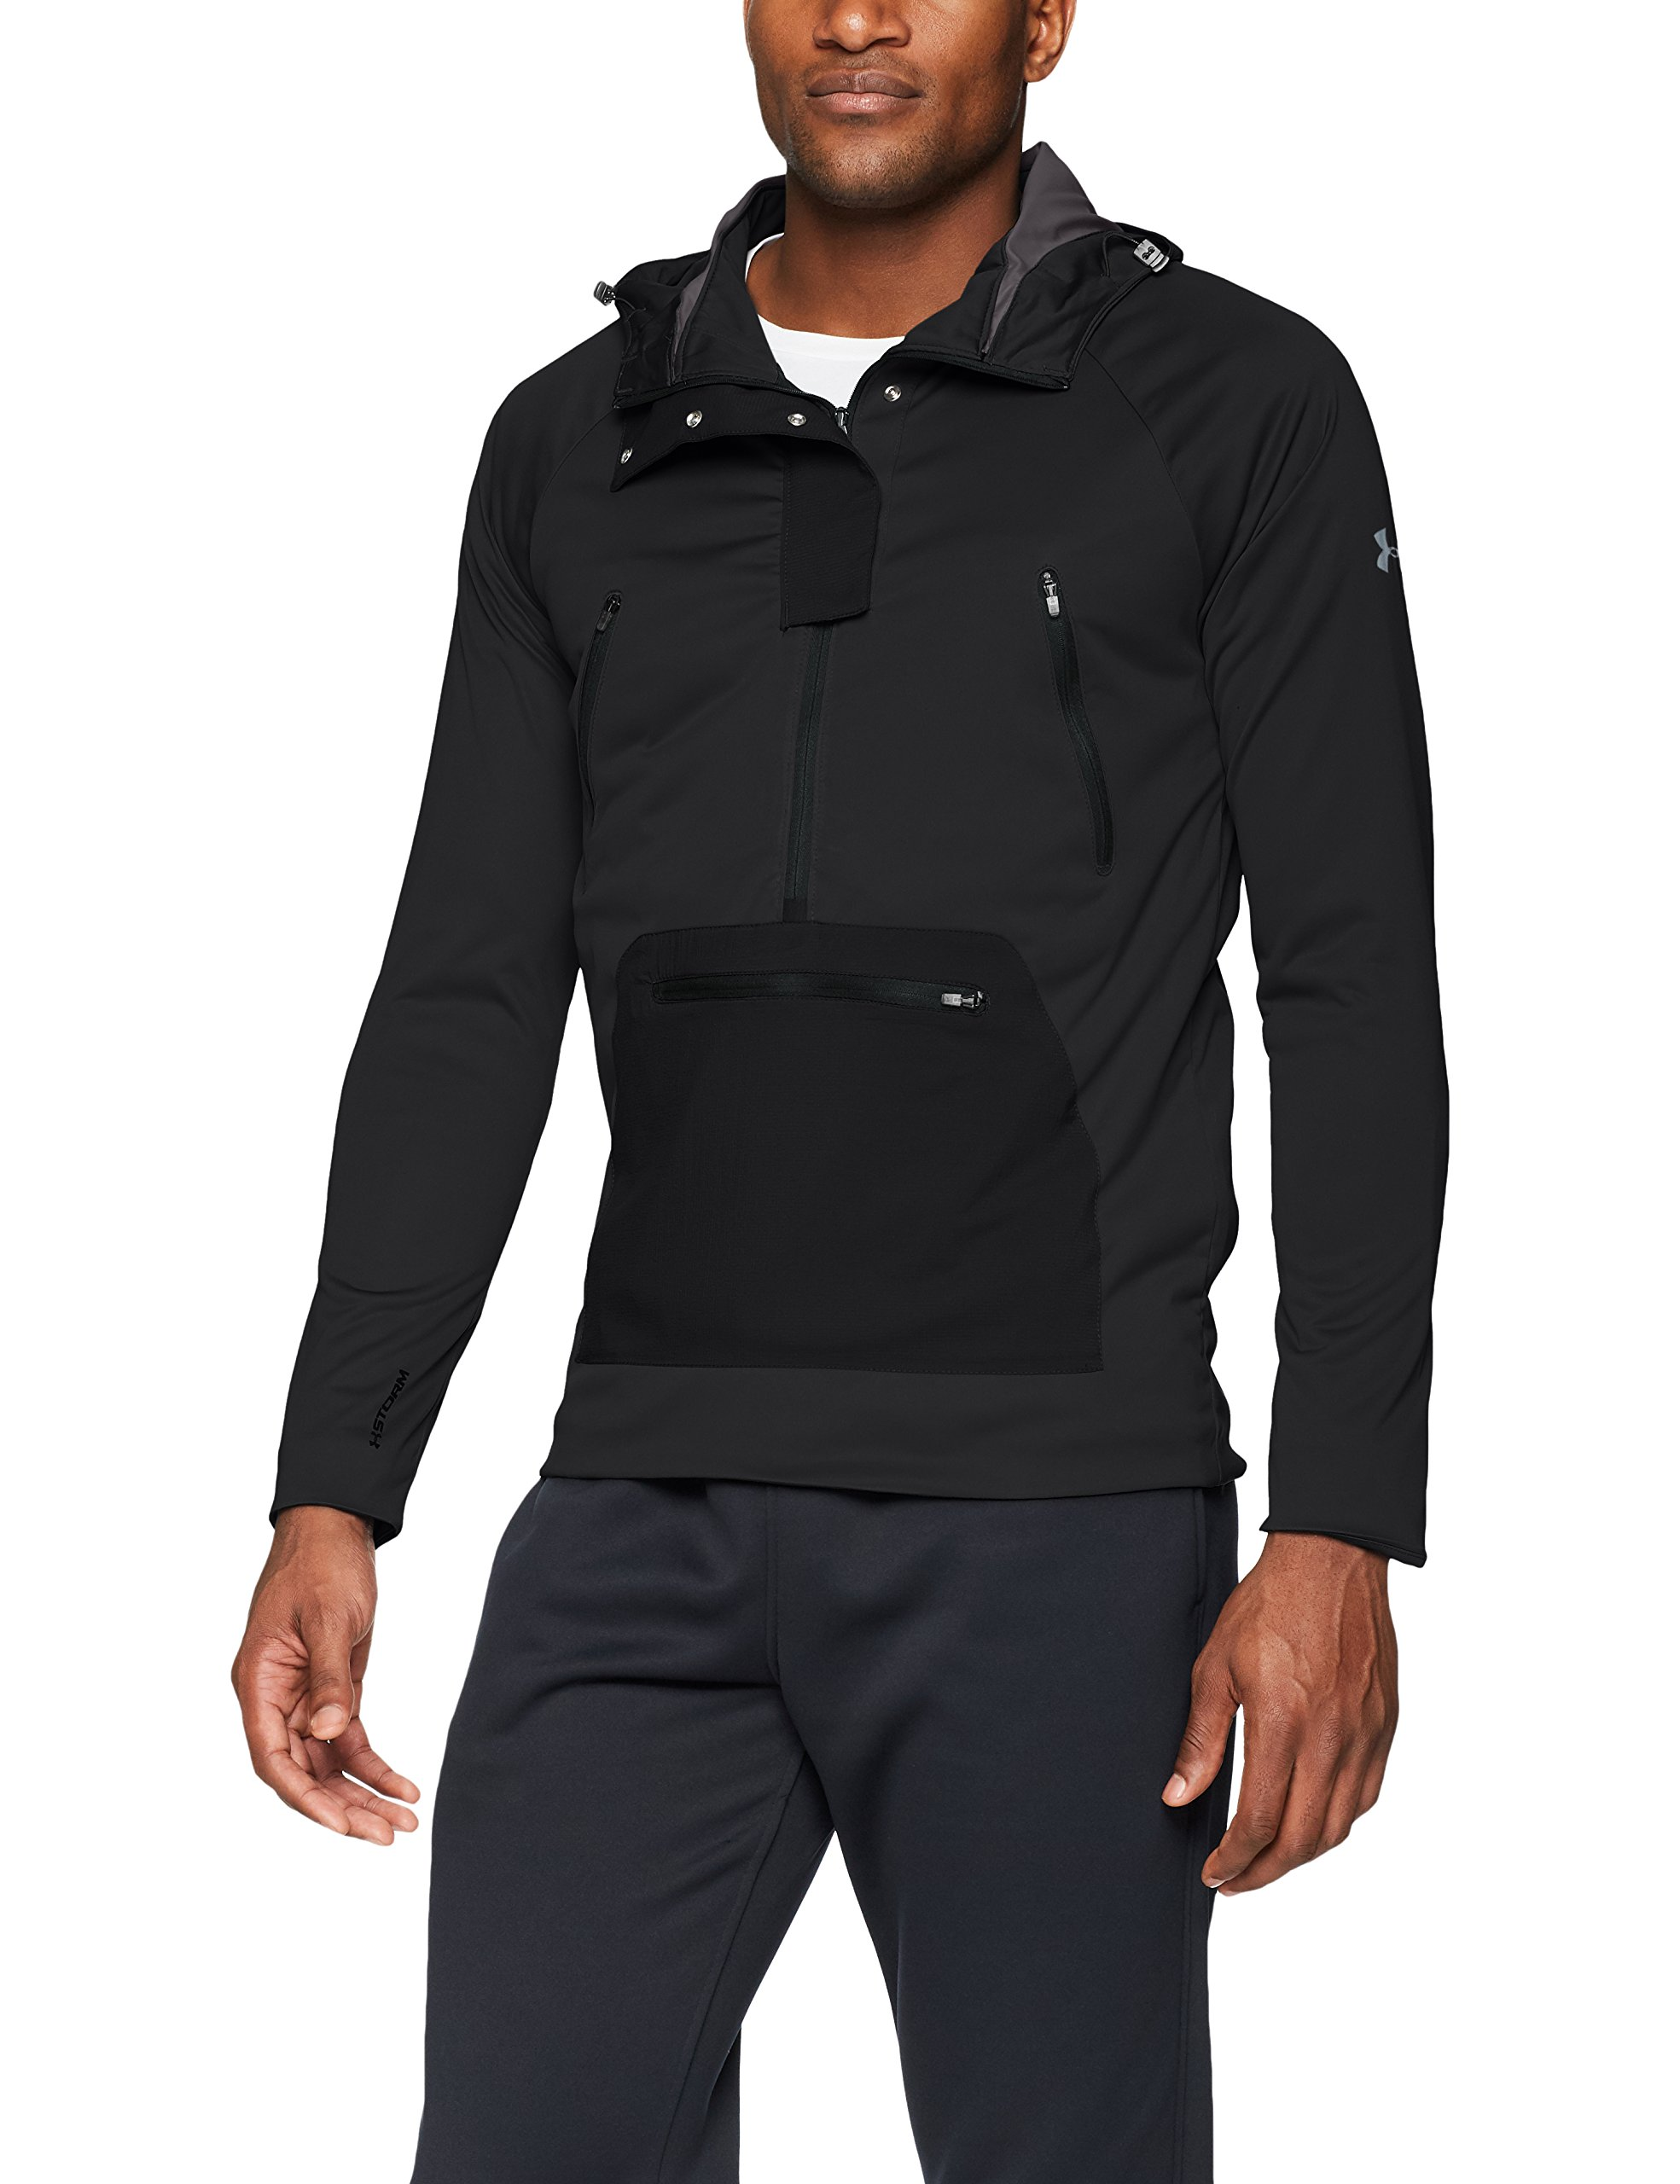 Under Armour Men's Storm Define The Anorak Jacket , Black (001)/Reflective, Large by Under Armour (Image #1)